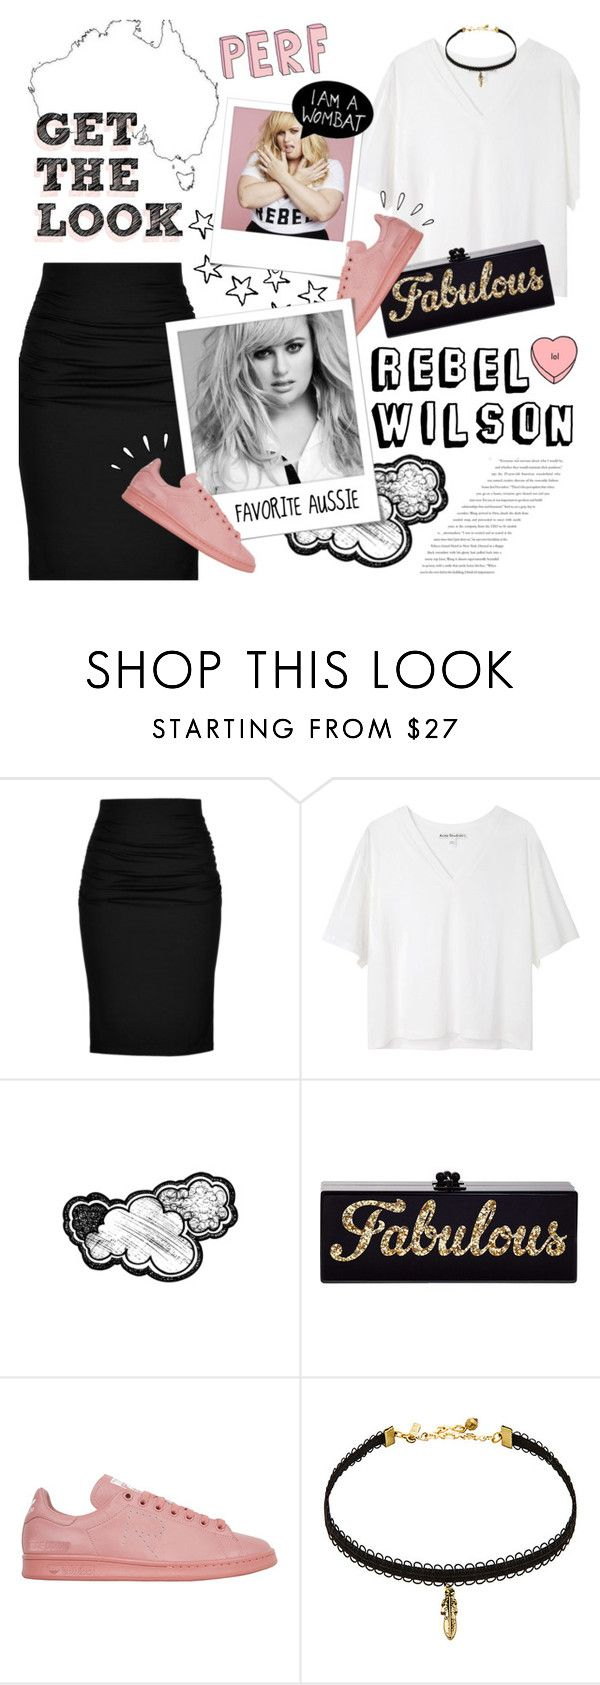 """Get the Look: Fave Aussie Actress ~ Rebel Wilson ~"" by aj93 ❤ liked on Polyvore featuring Balenciaga, Paule Ka, Acne Studios, Polaroid, Edie Parker, adidas, Old Navy, Vanessa Mooney and GetTheLook"